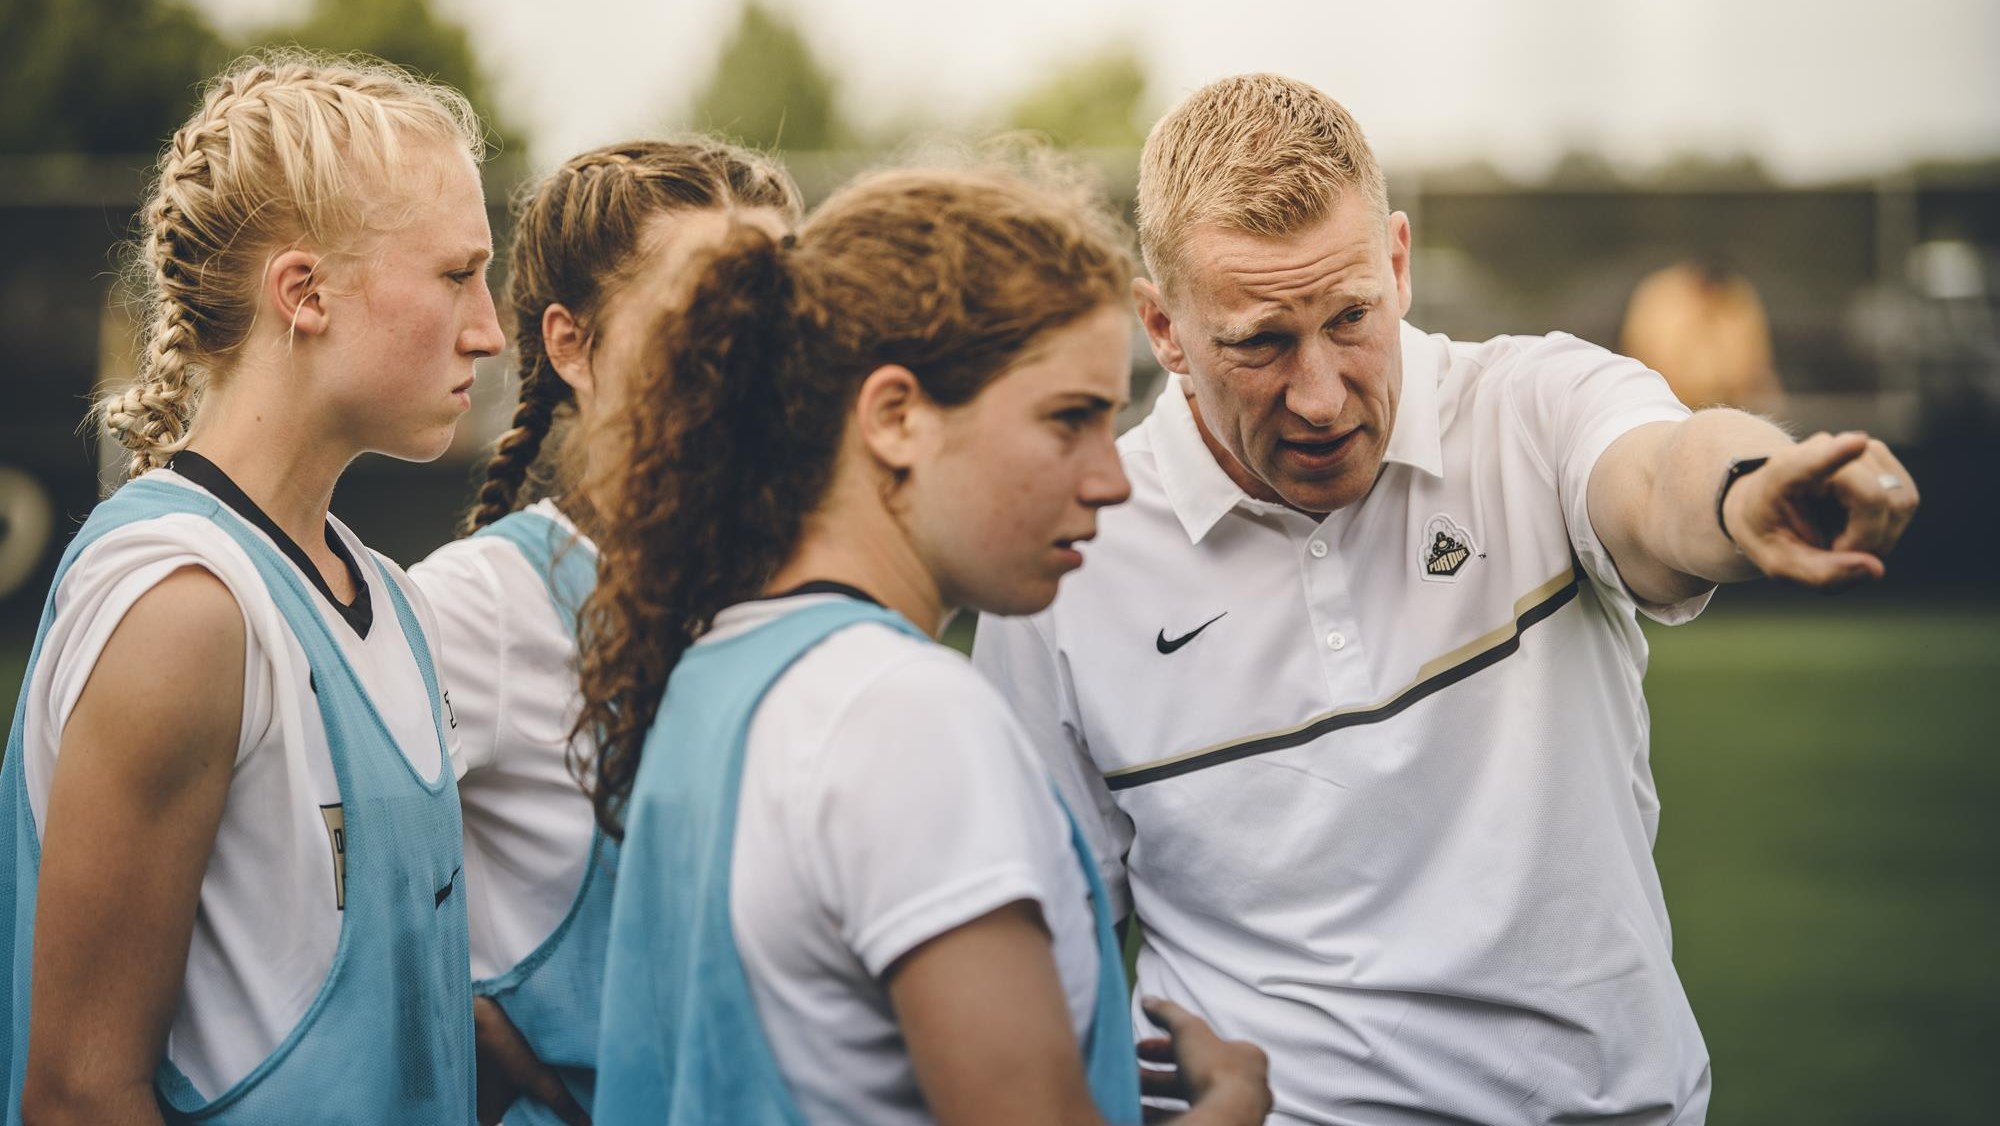 Soccer Summer Camp Dates Set - Purdue University Athletics